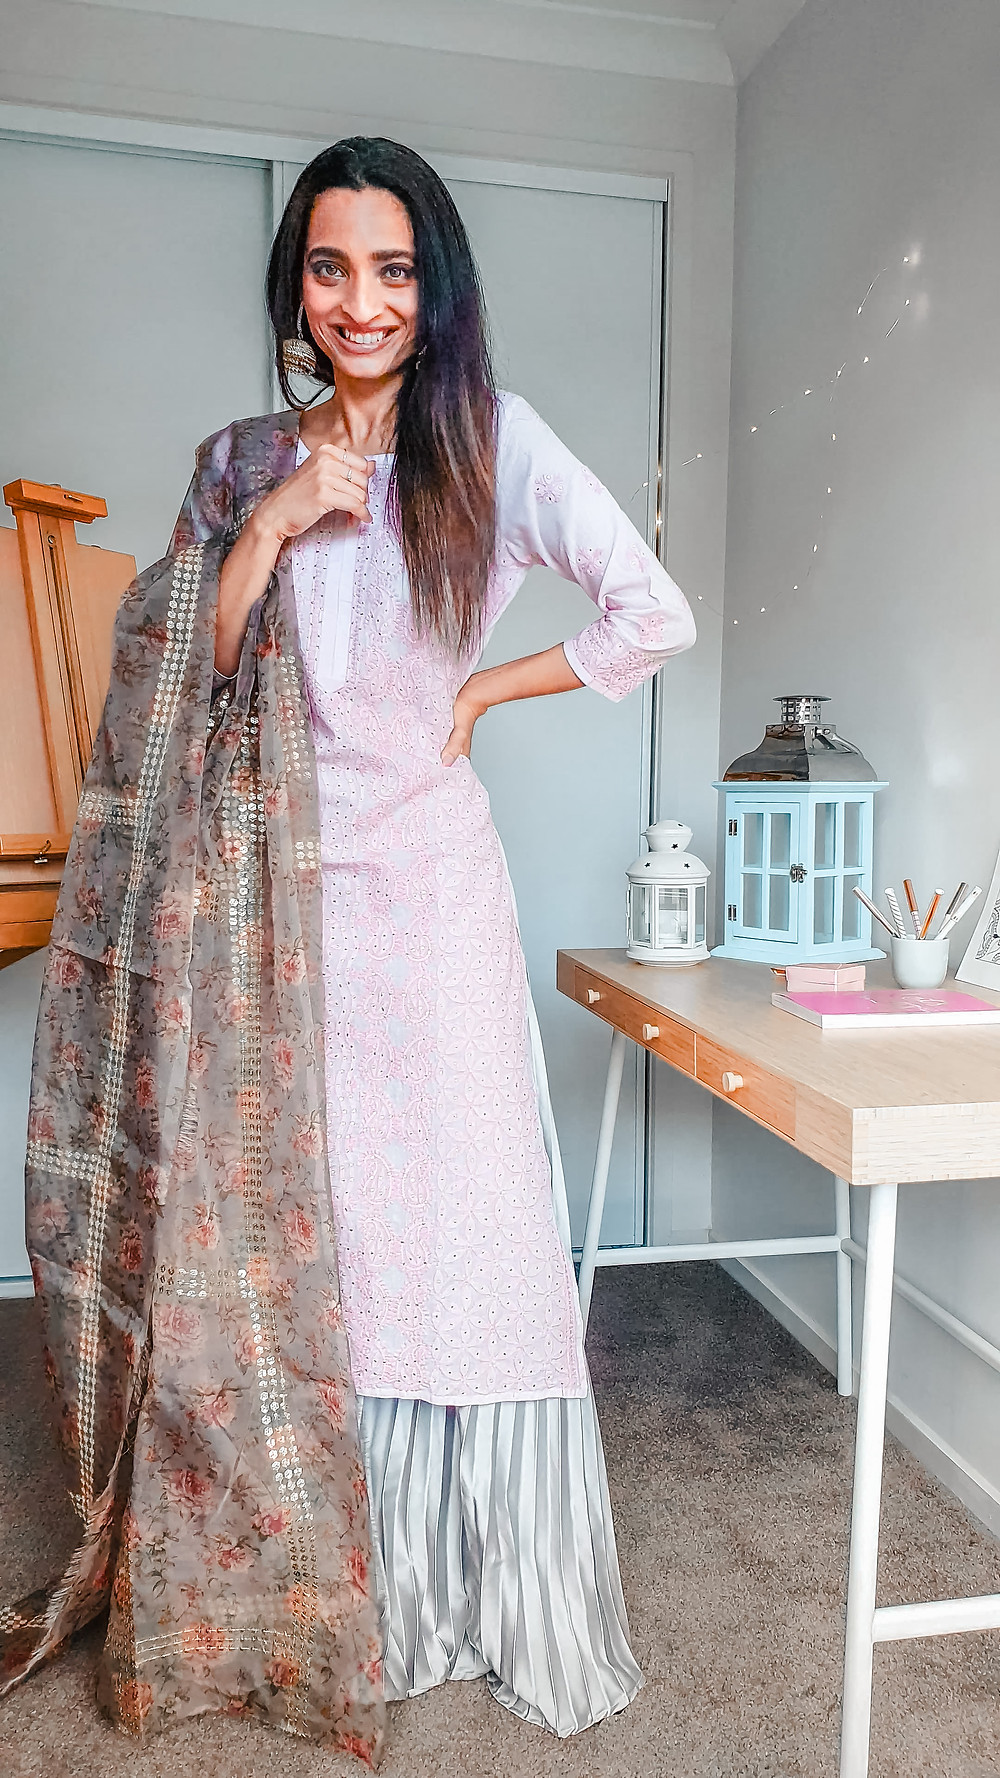 girl blogger at wackyvanilla.com wearing pink chikankari kurta with gray coloured pleated long skirt and printed floral dupatta or drape to show how to style a kurta in 7 different ways to create indo-western fusion style outfit